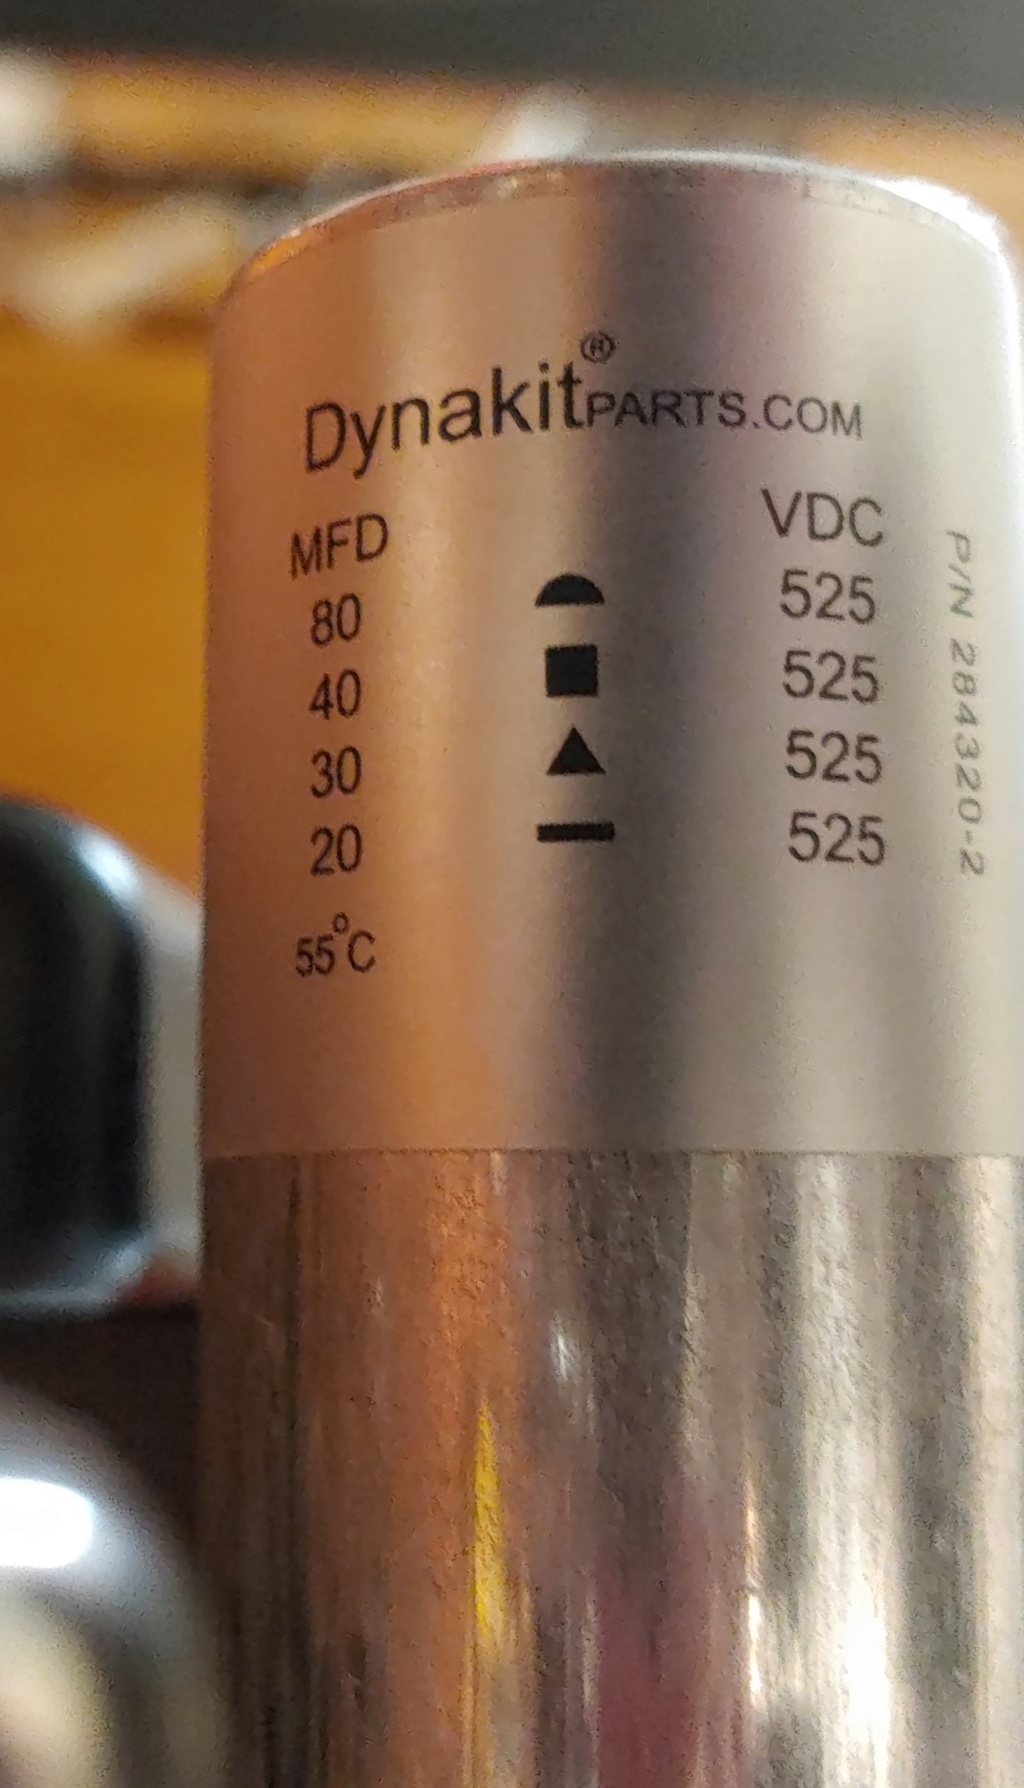 Original Dynakit ST70 - Quad cap is vibrating with the music Mm_qua10